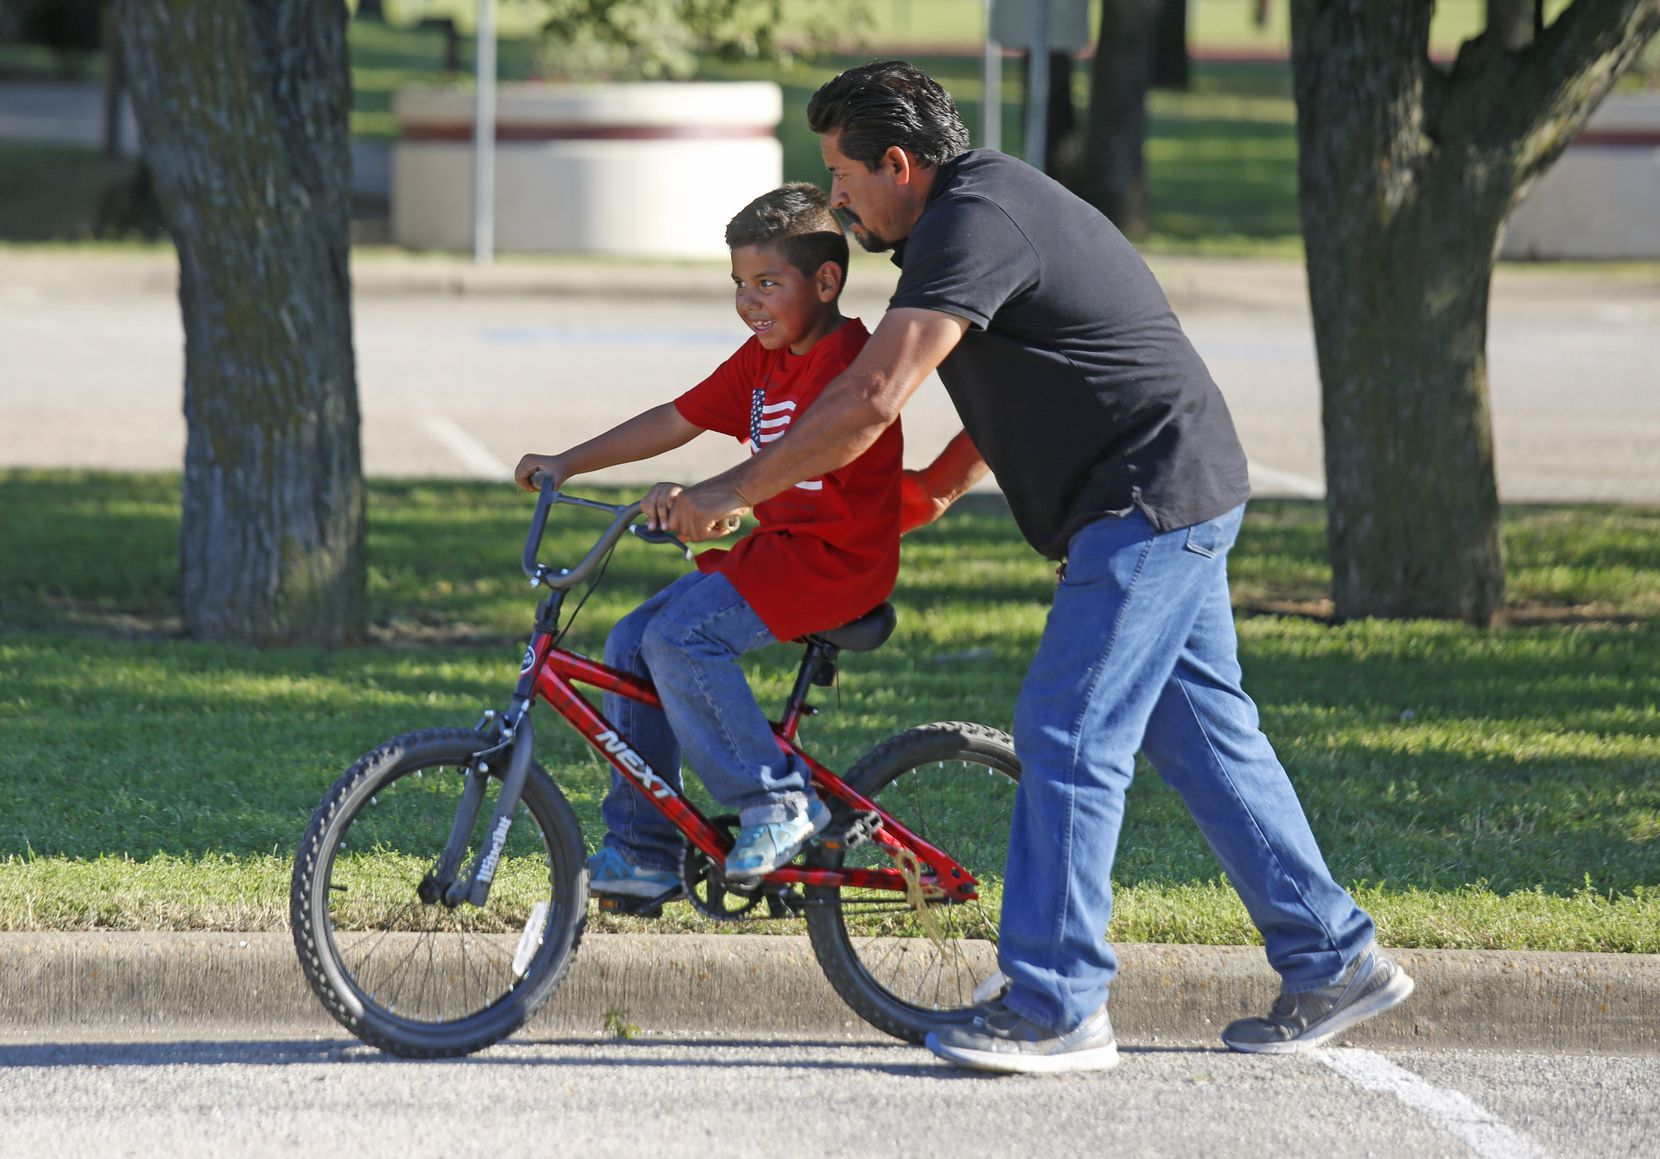 Jose Crispin helps his son, Andrew Garcia, 6, learn to ride his bike at Balch Springs Irwin Park, where vigils were held for 15-year-old  Jordan Edwards, who was shot nearby by a Balch Springs police officer.